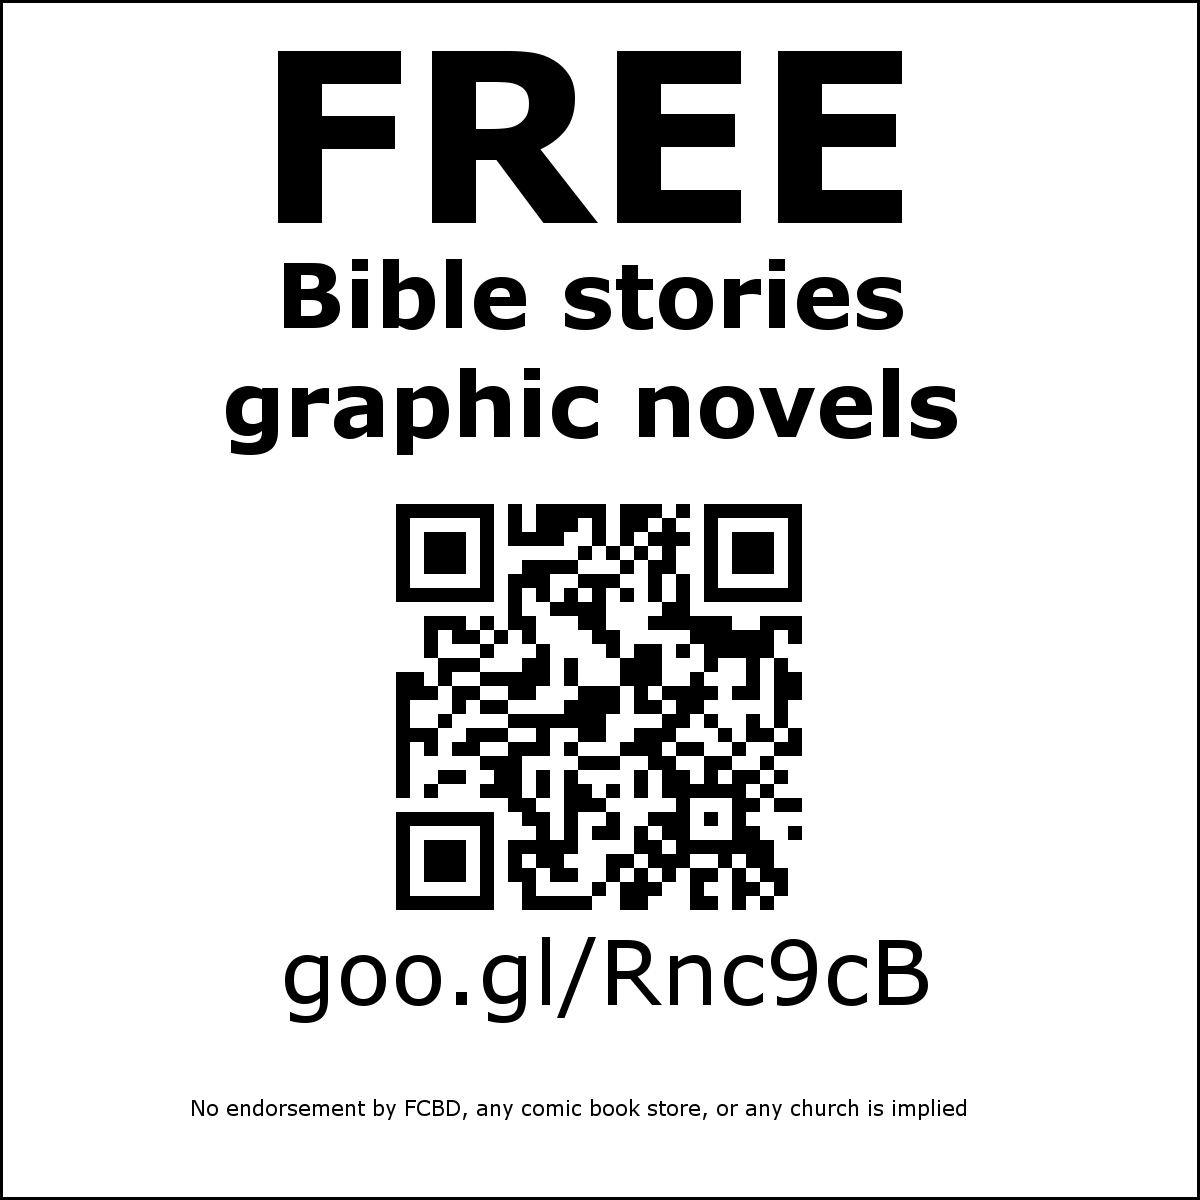 FREE Bible stories graphic novels goo.gl/Rnc9cB No endorsement by FCBD or any comic book store or church implied